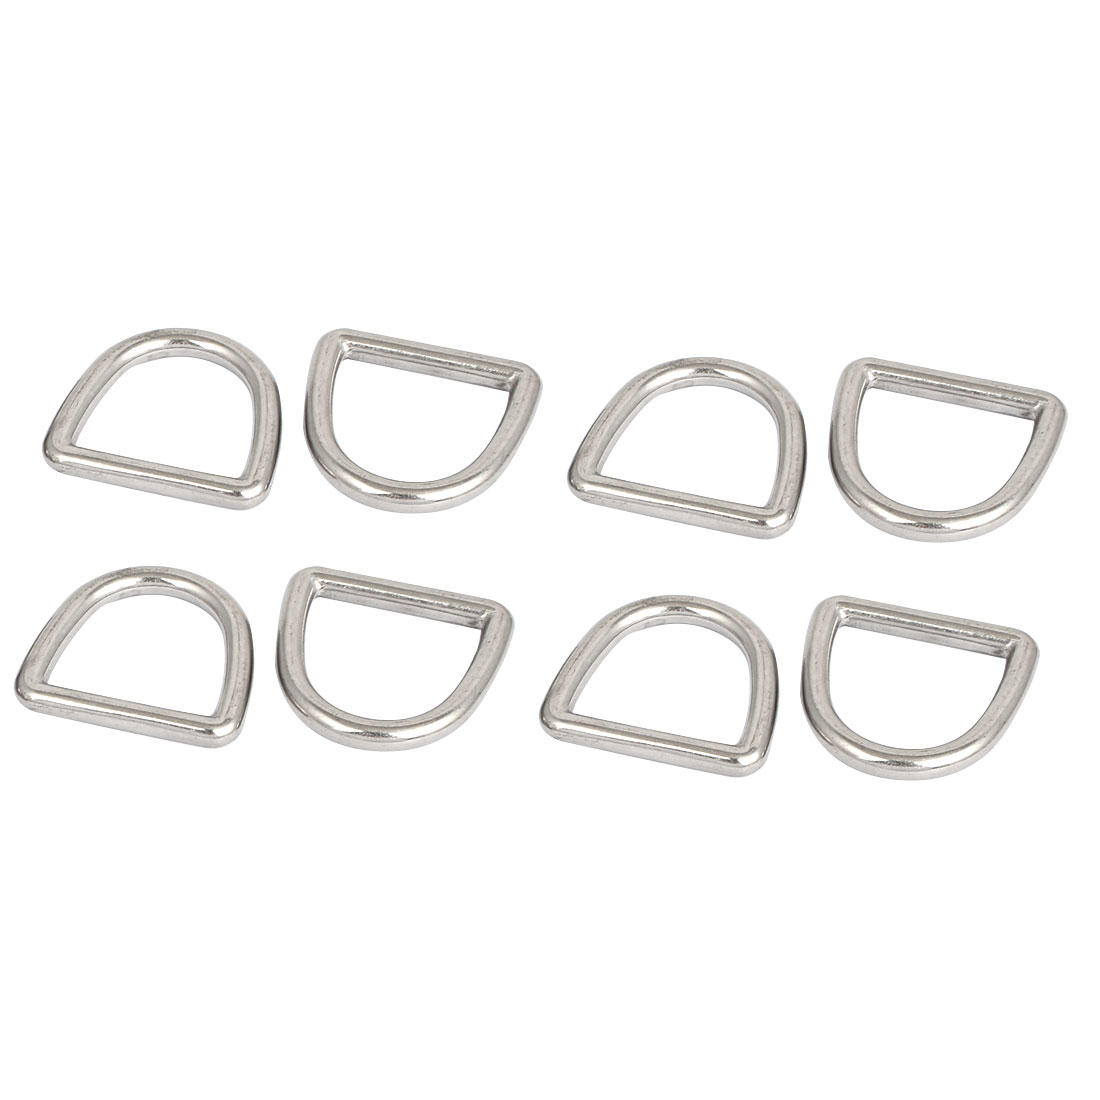 Stainless Steel D Ring Hooks D-Shaped Buckles Handbag Belt Buckle 8 Pcs